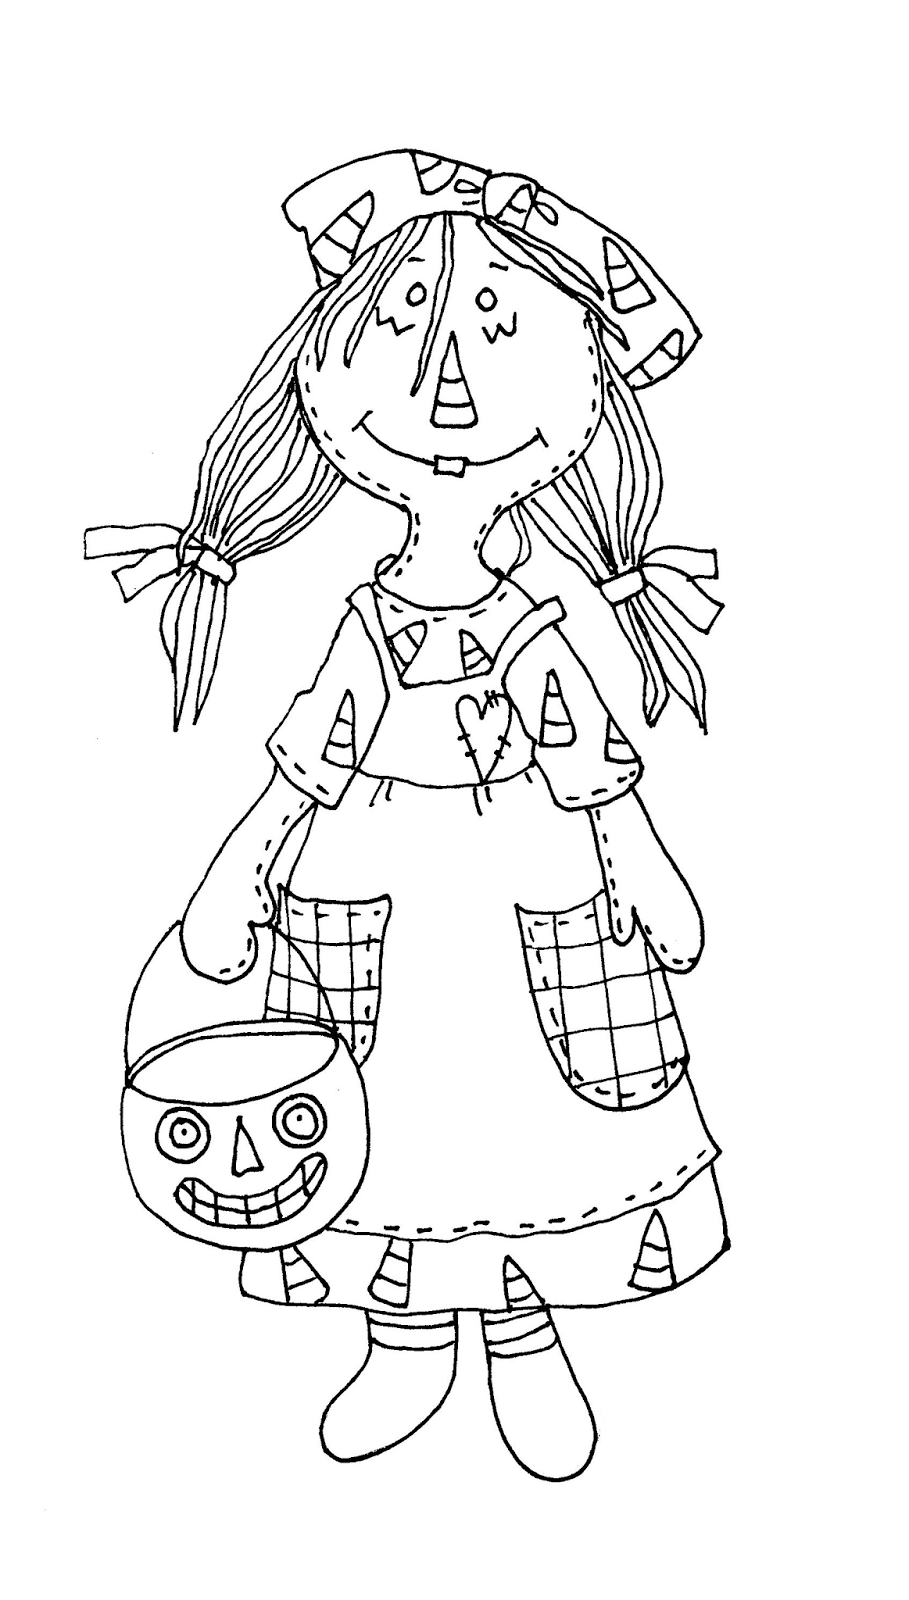 prmitive coloring pages - photo#17